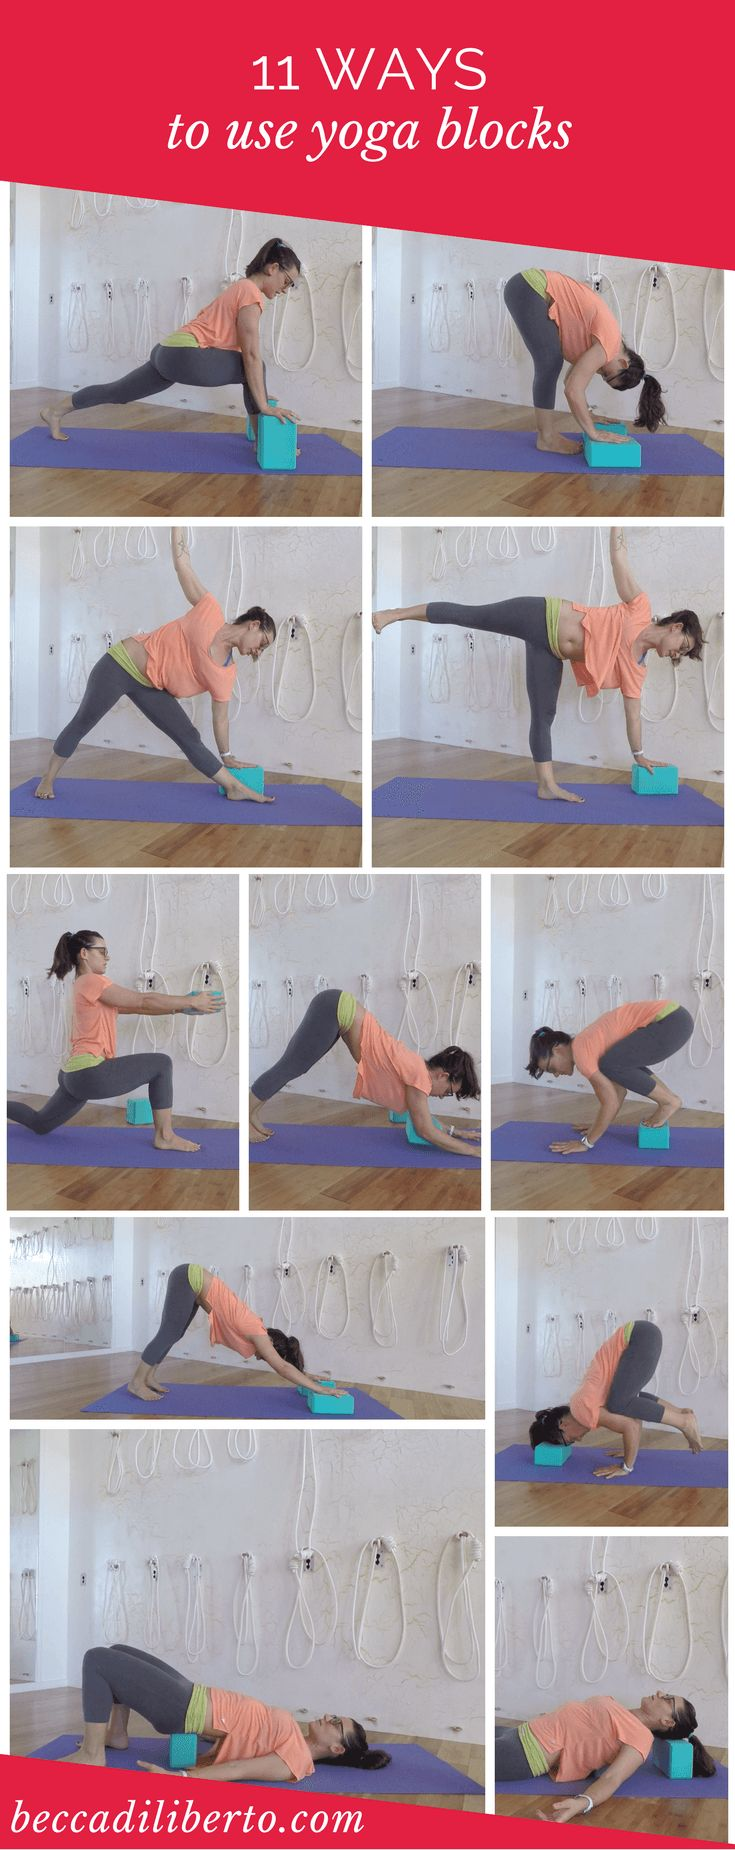 learn how to use yoga blocks to customize your yoga practice   click to watch the video